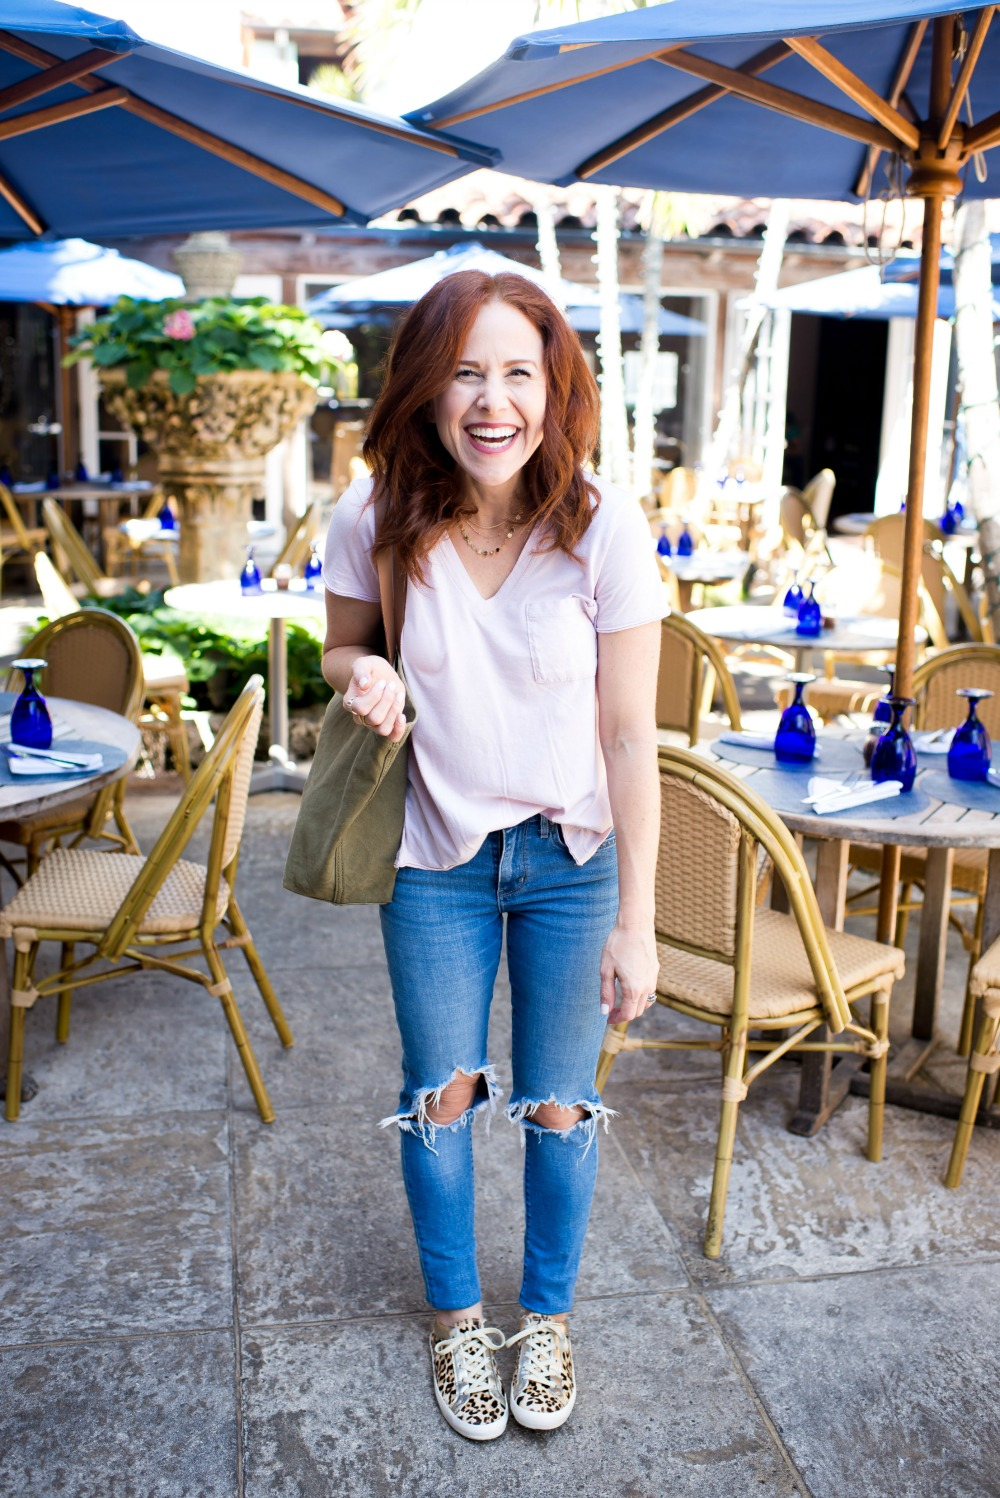 What to wear this weekend: tee, jeans & leopard sneakers // the modern savvy, a south florida life & style blog #momstyle #redhead #realoutfit